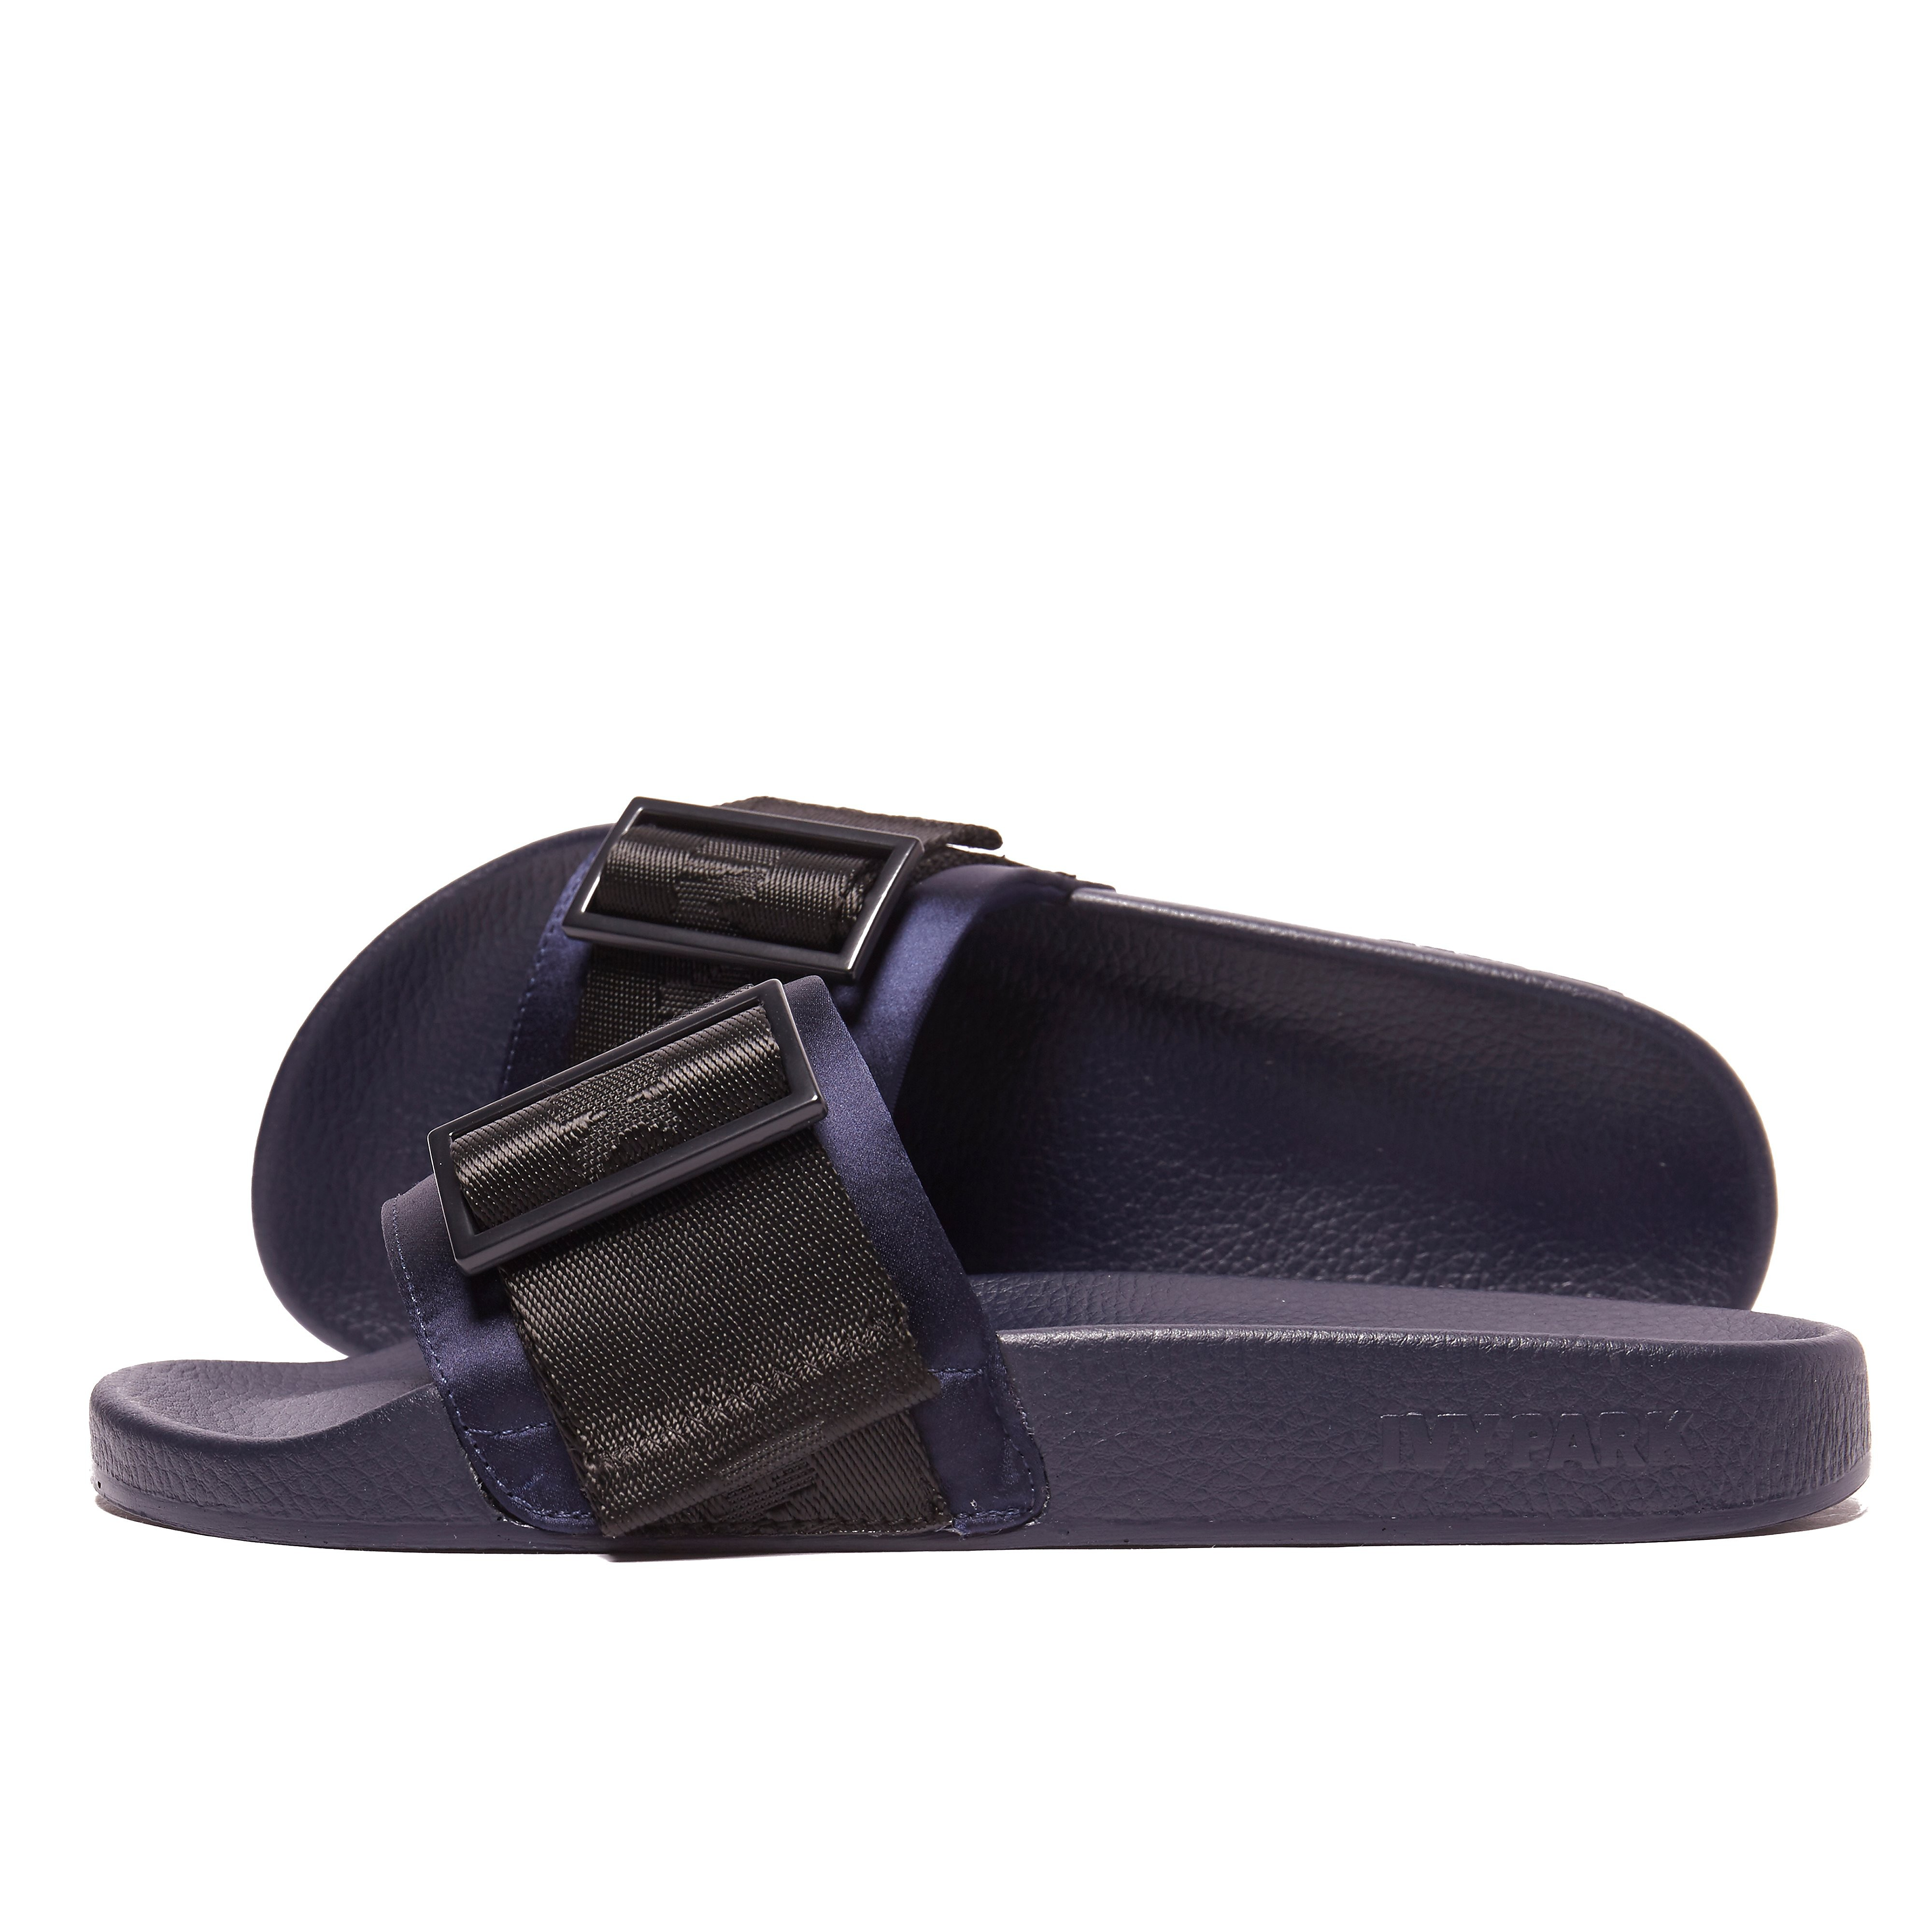 IVY PARK chanclas Strap para mujer